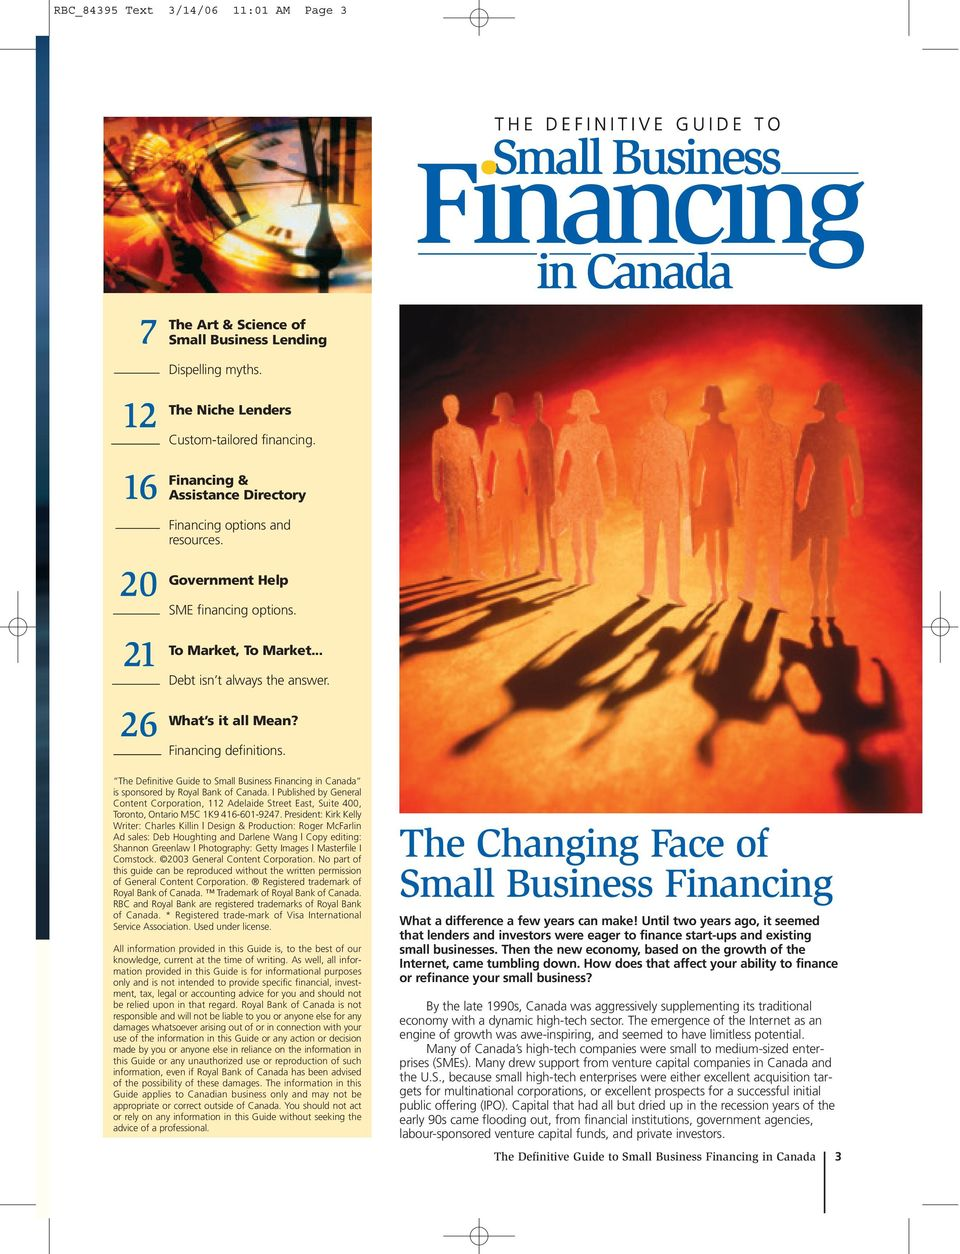 .. Debt isn t always the answer. What s it all Mean? Financing definitions. The Definitive Guide to Small Business Financing in Canada is sponsored by Royal Bank of Canada.